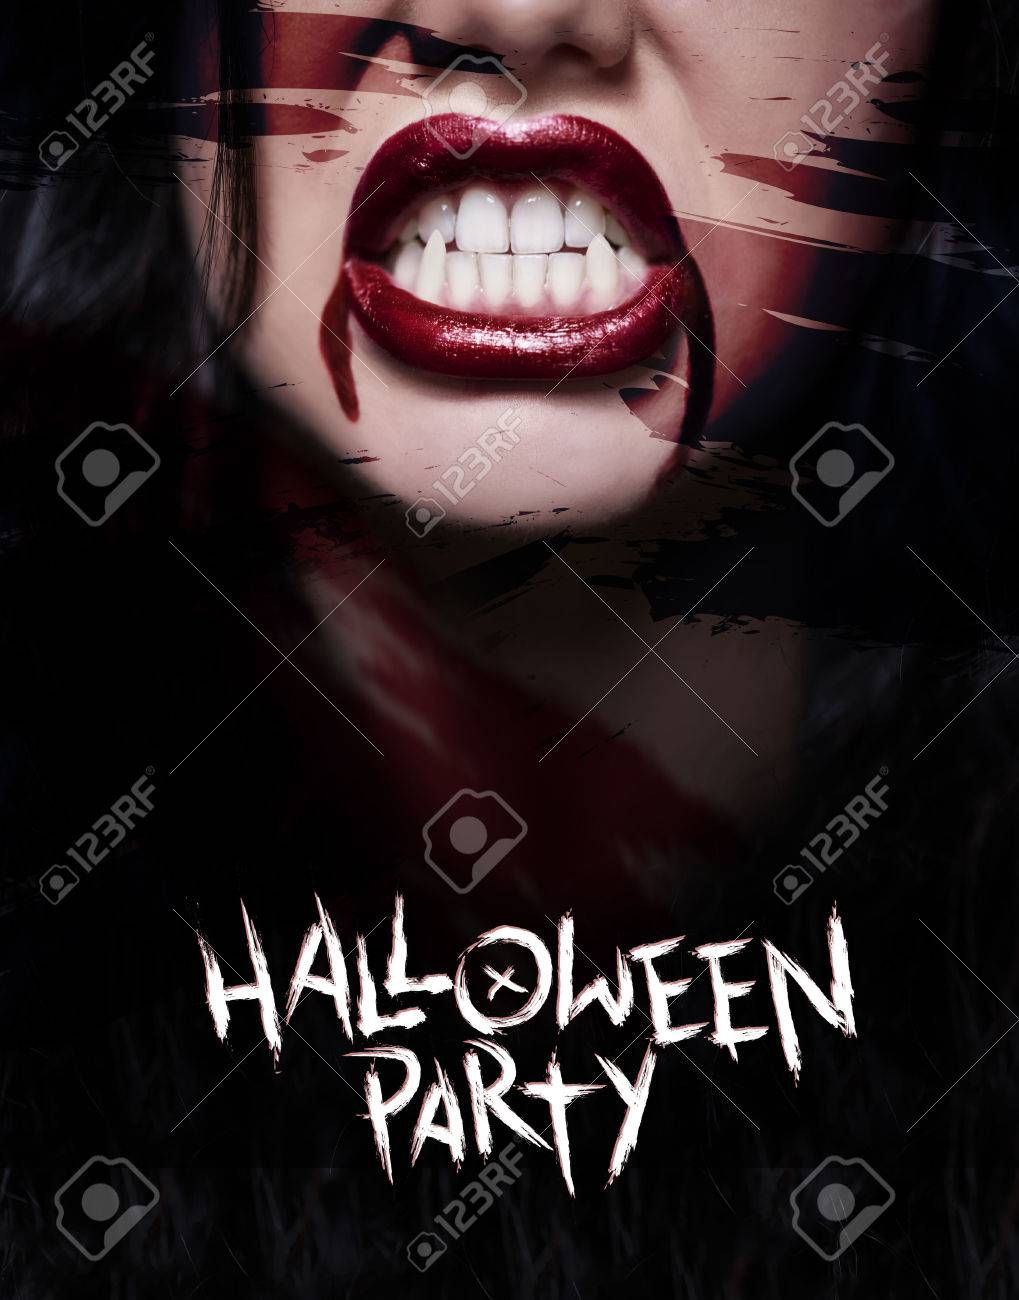 Scary poster with creepy face - 79809439